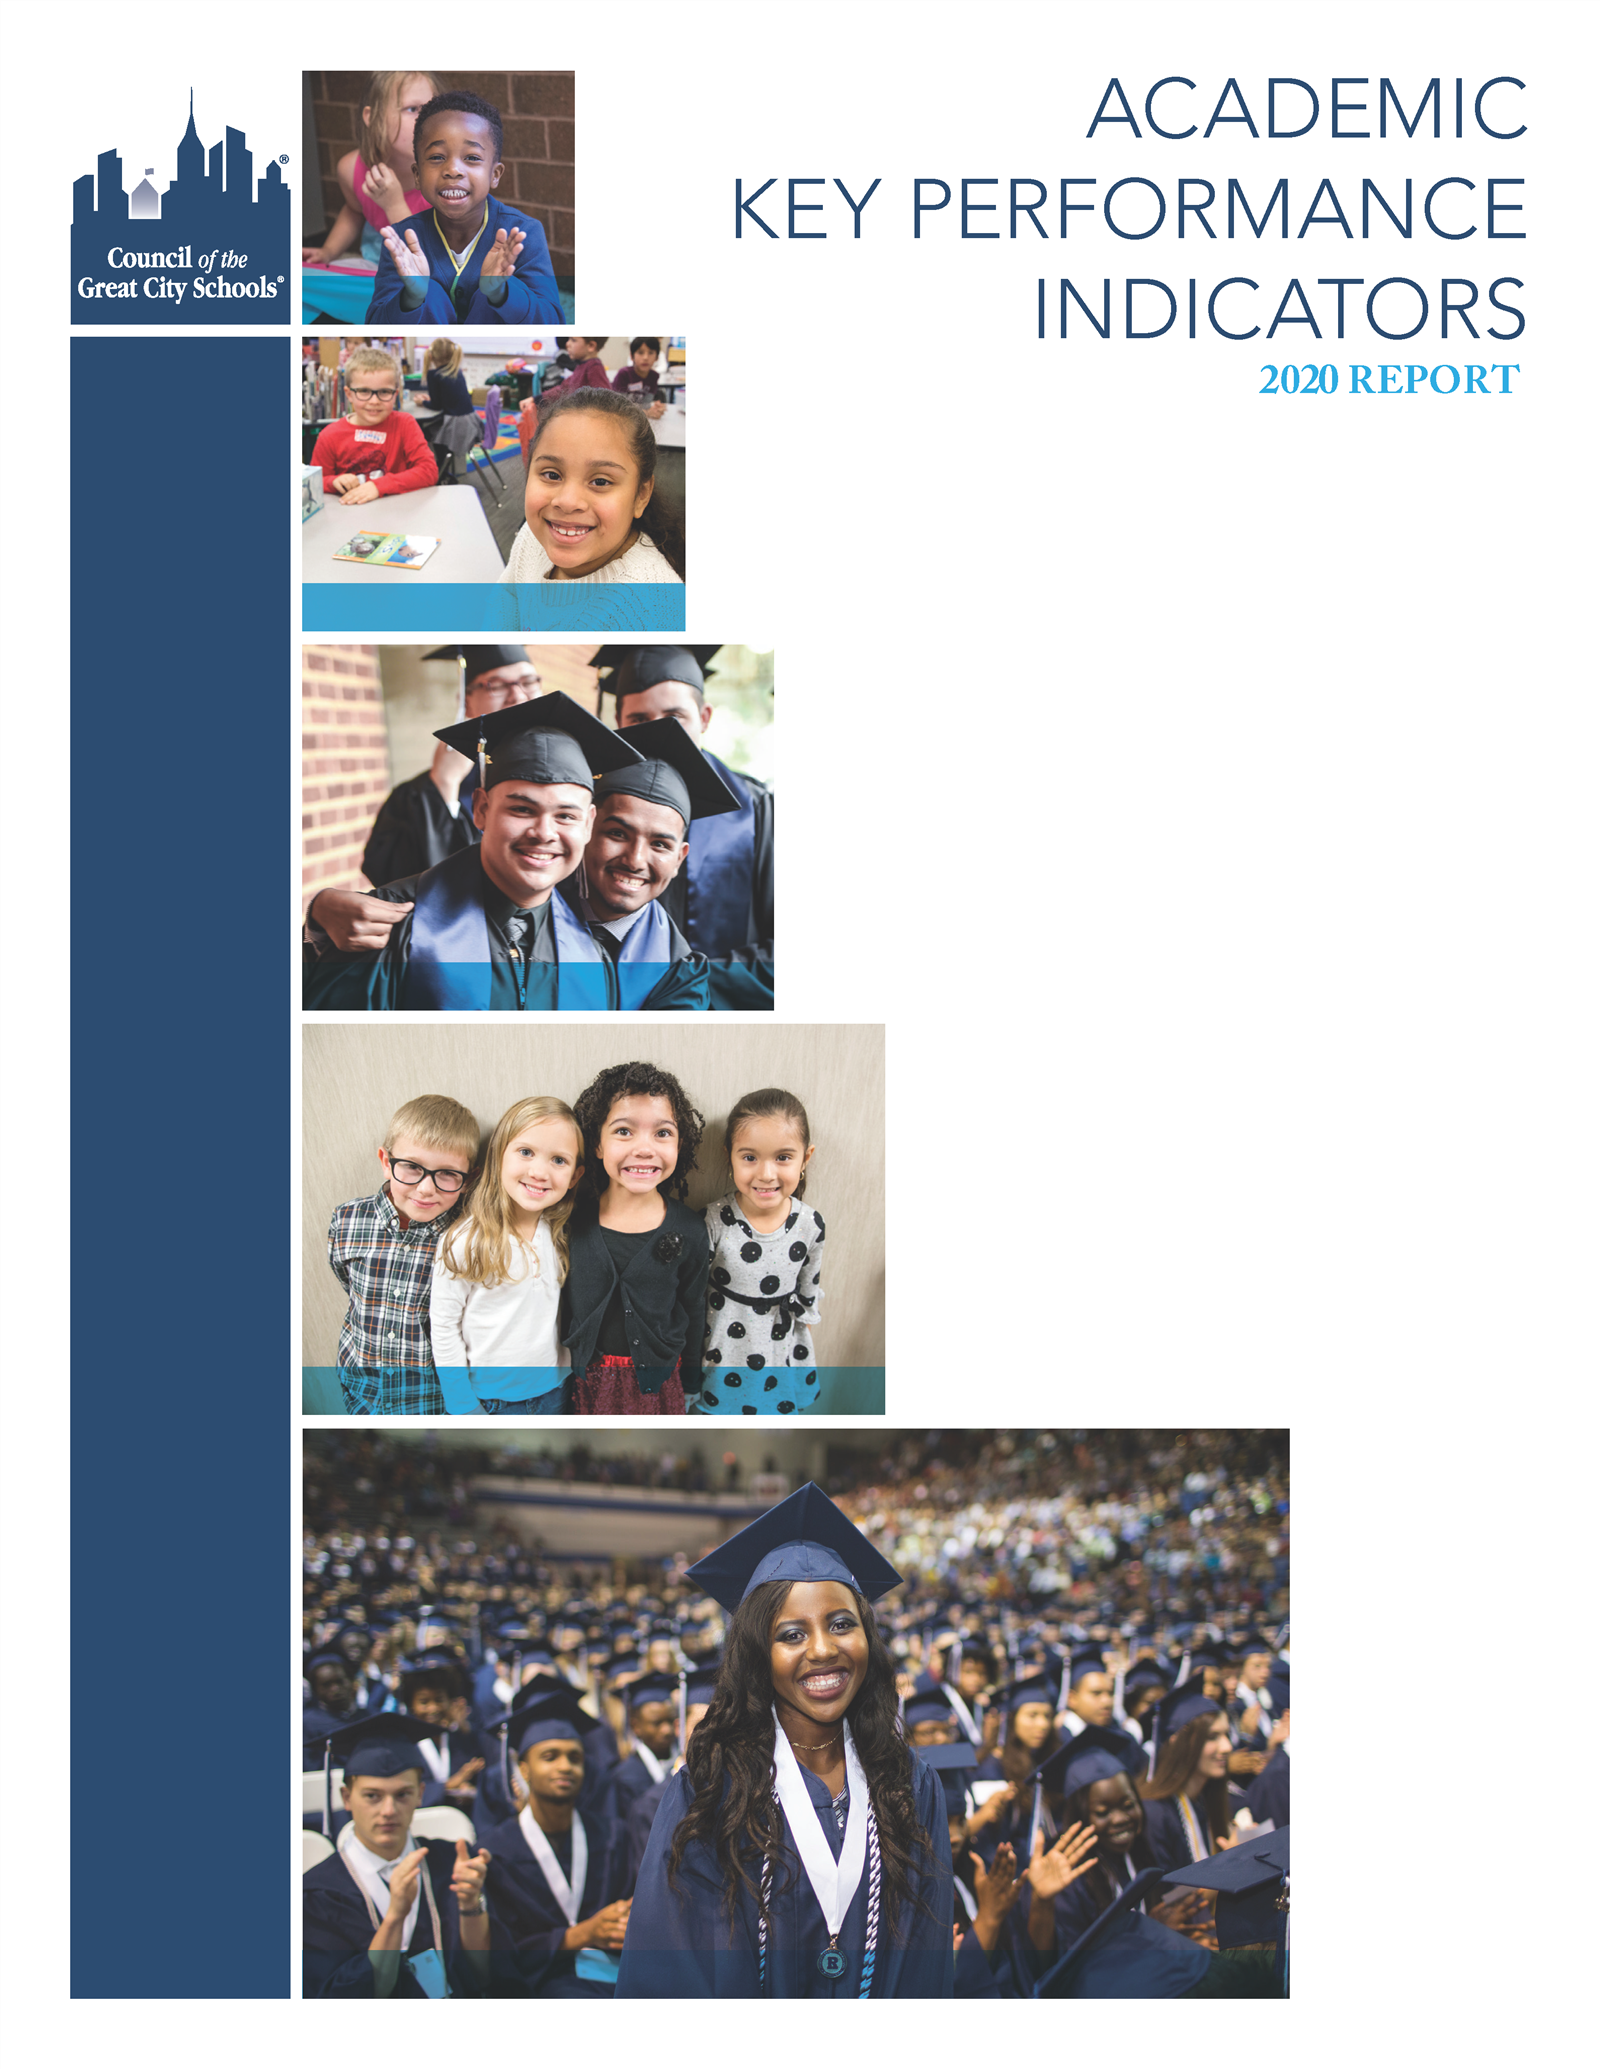 Academic Key Performance Indicators, 2020 Report